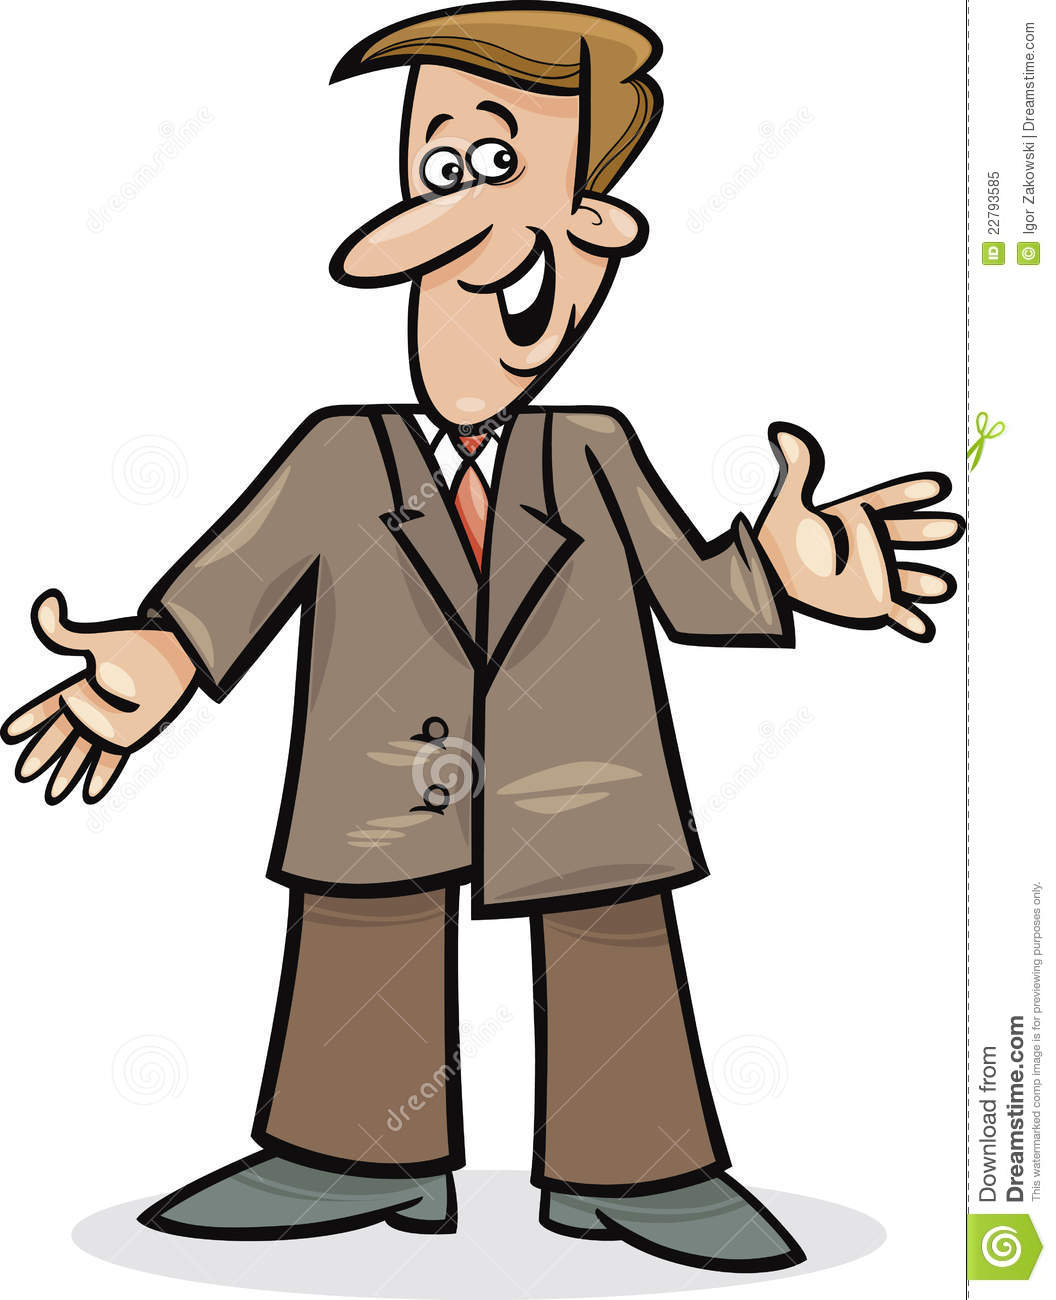 Cartoon Man In Suit Royalty Free Stock Photo   Image  22793585